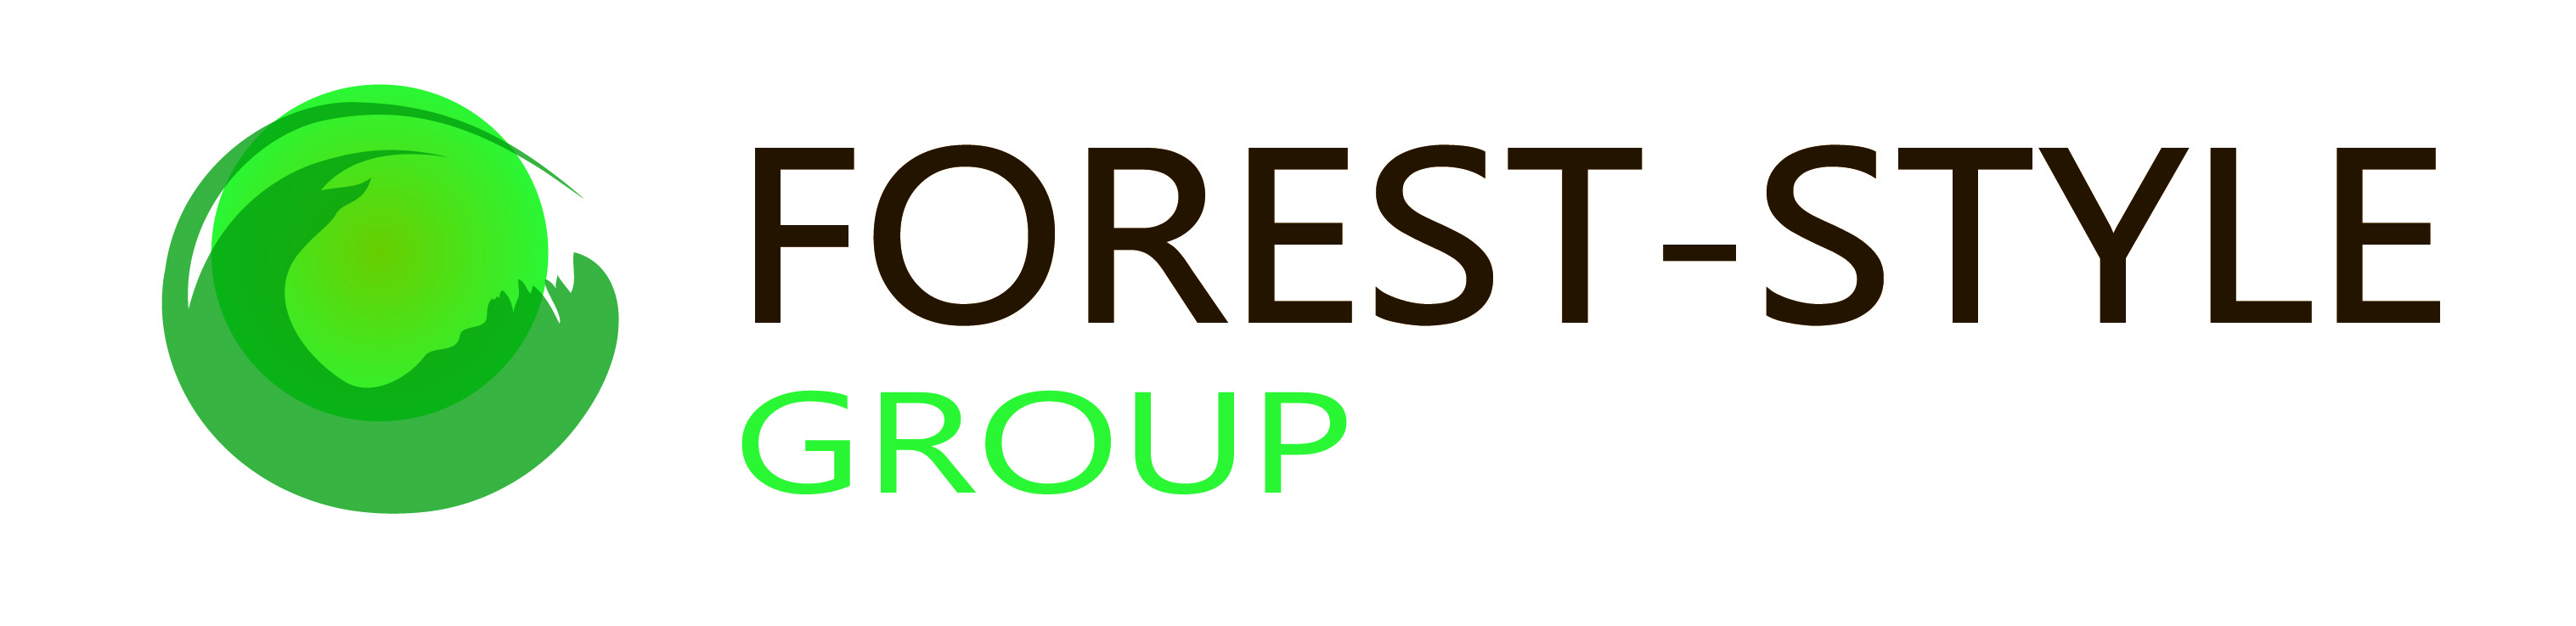 NEW_LOGO_FOREST_GROUP